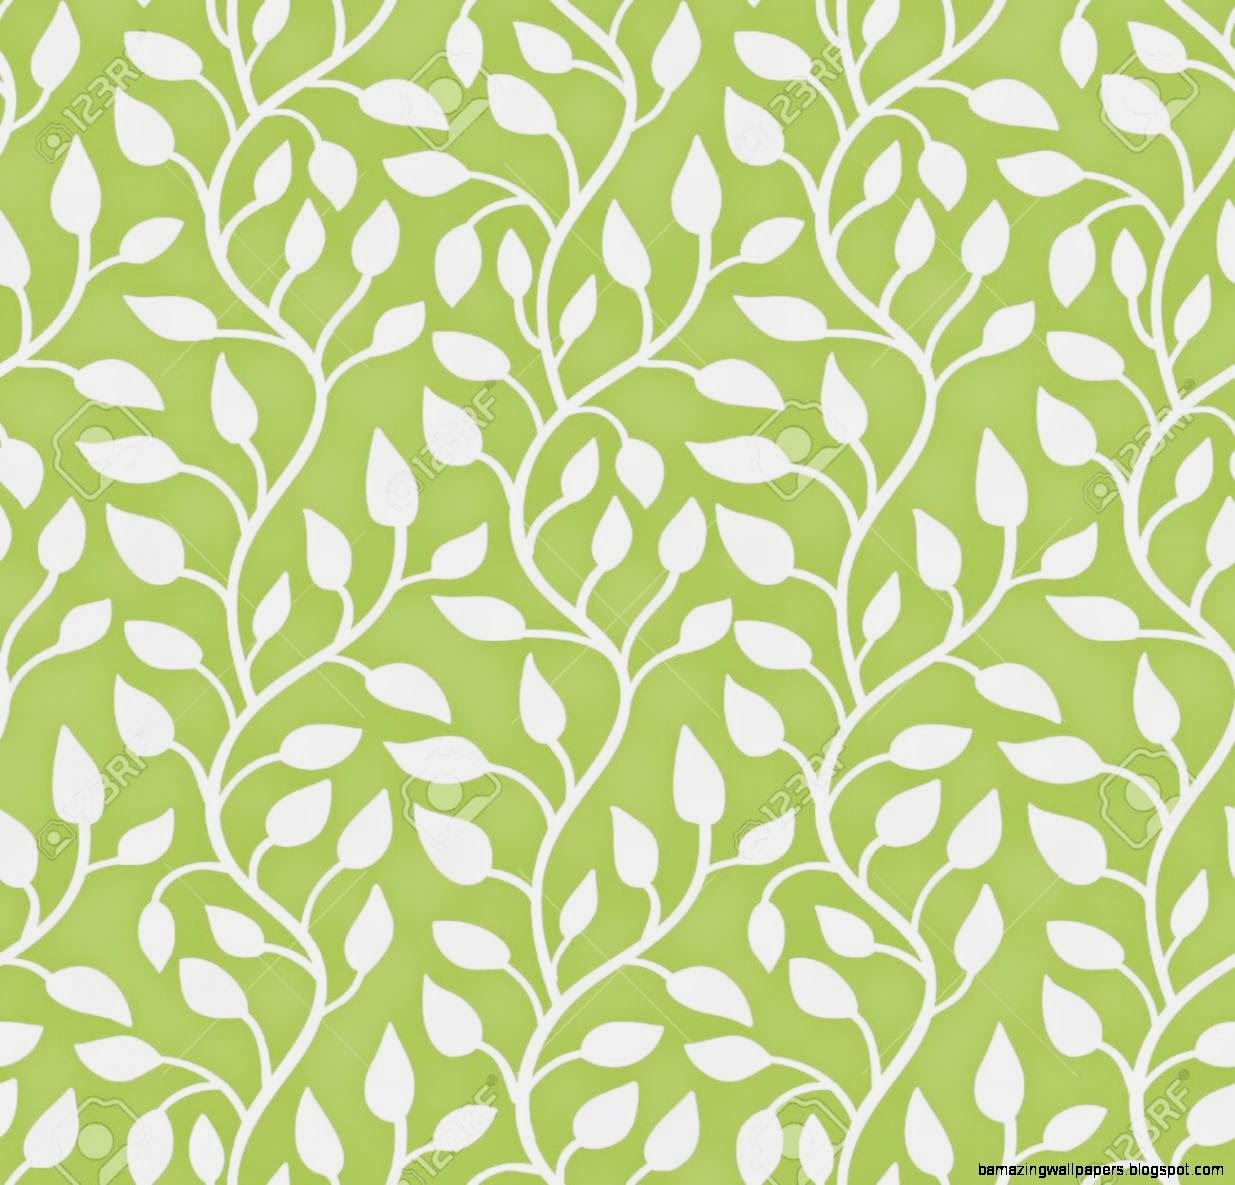 Seamless Modern Leaf Pattern Green Illustration Royalty Free